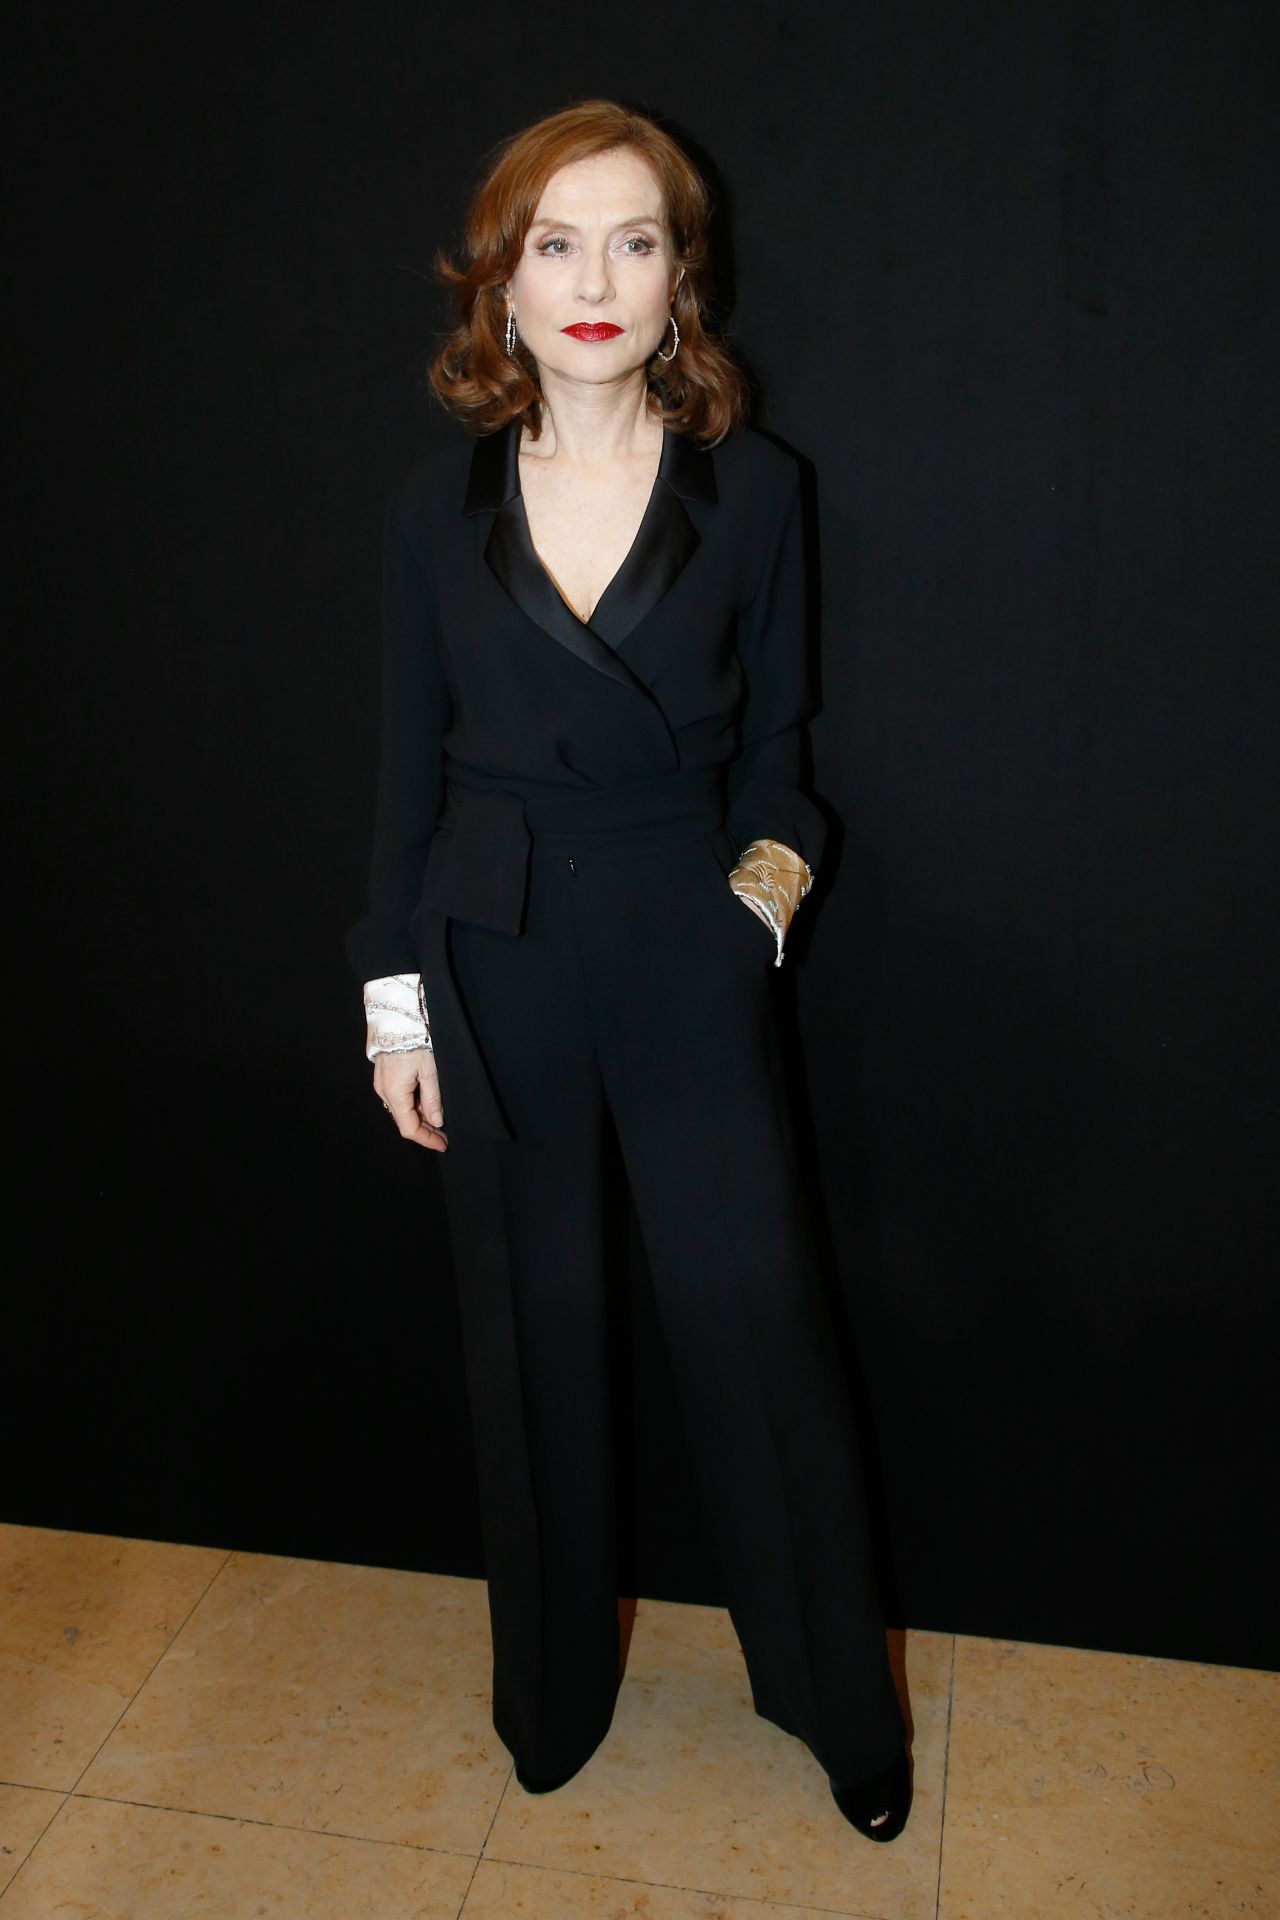 http://celebmafia.com/wp-content/uploads/2018/01/isabelle-huppert-giorgio-armani-prive-show-spring-summer-2018-in-paris-3.jpg